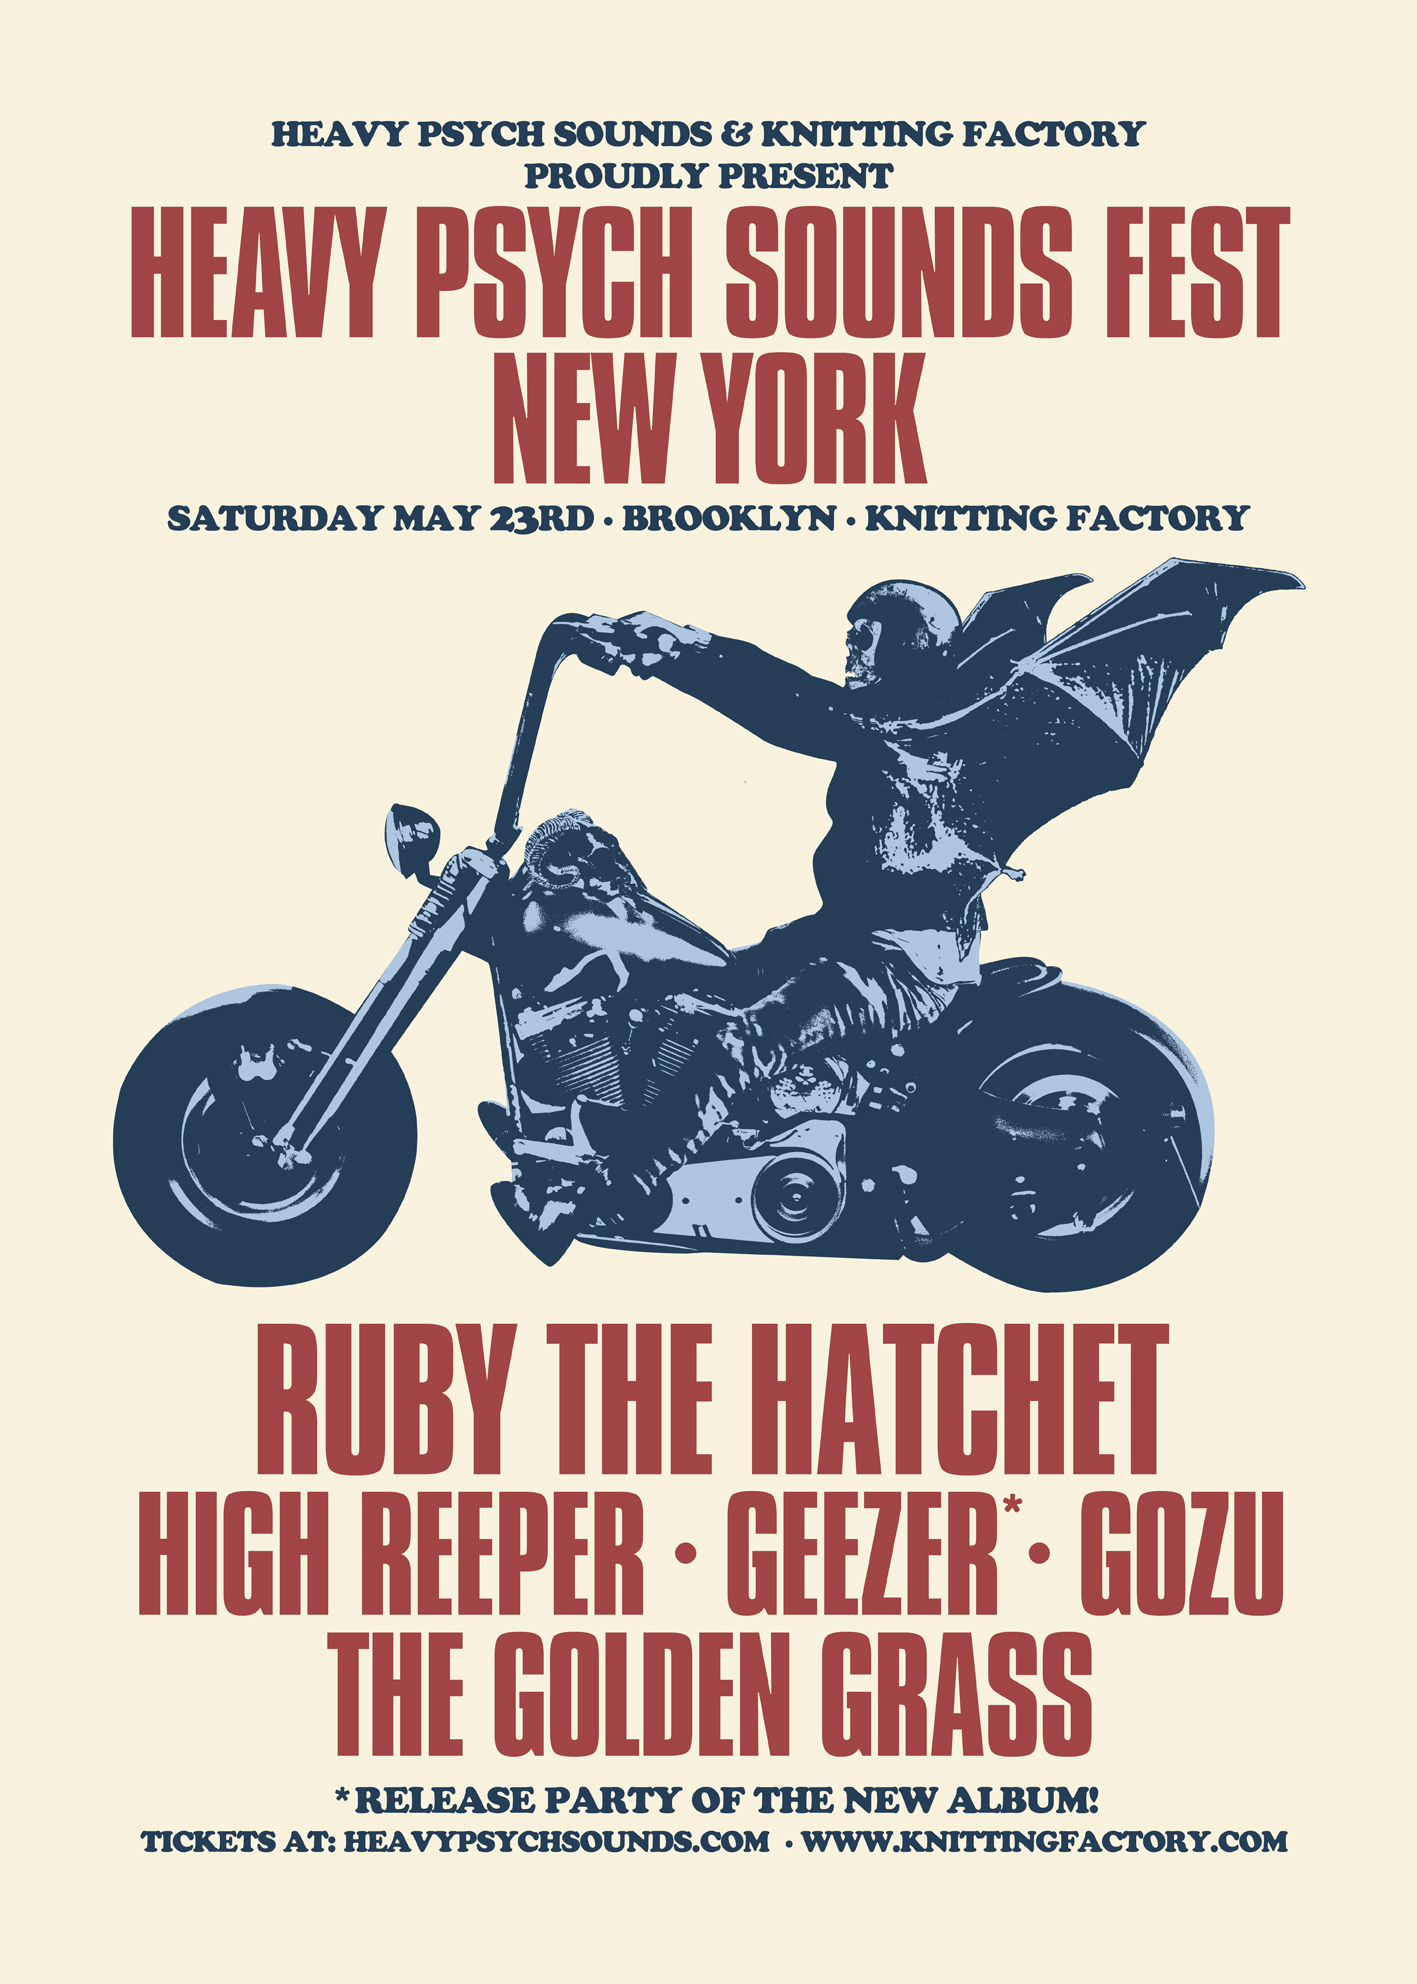 heavy psych sounds fest 2020 new york